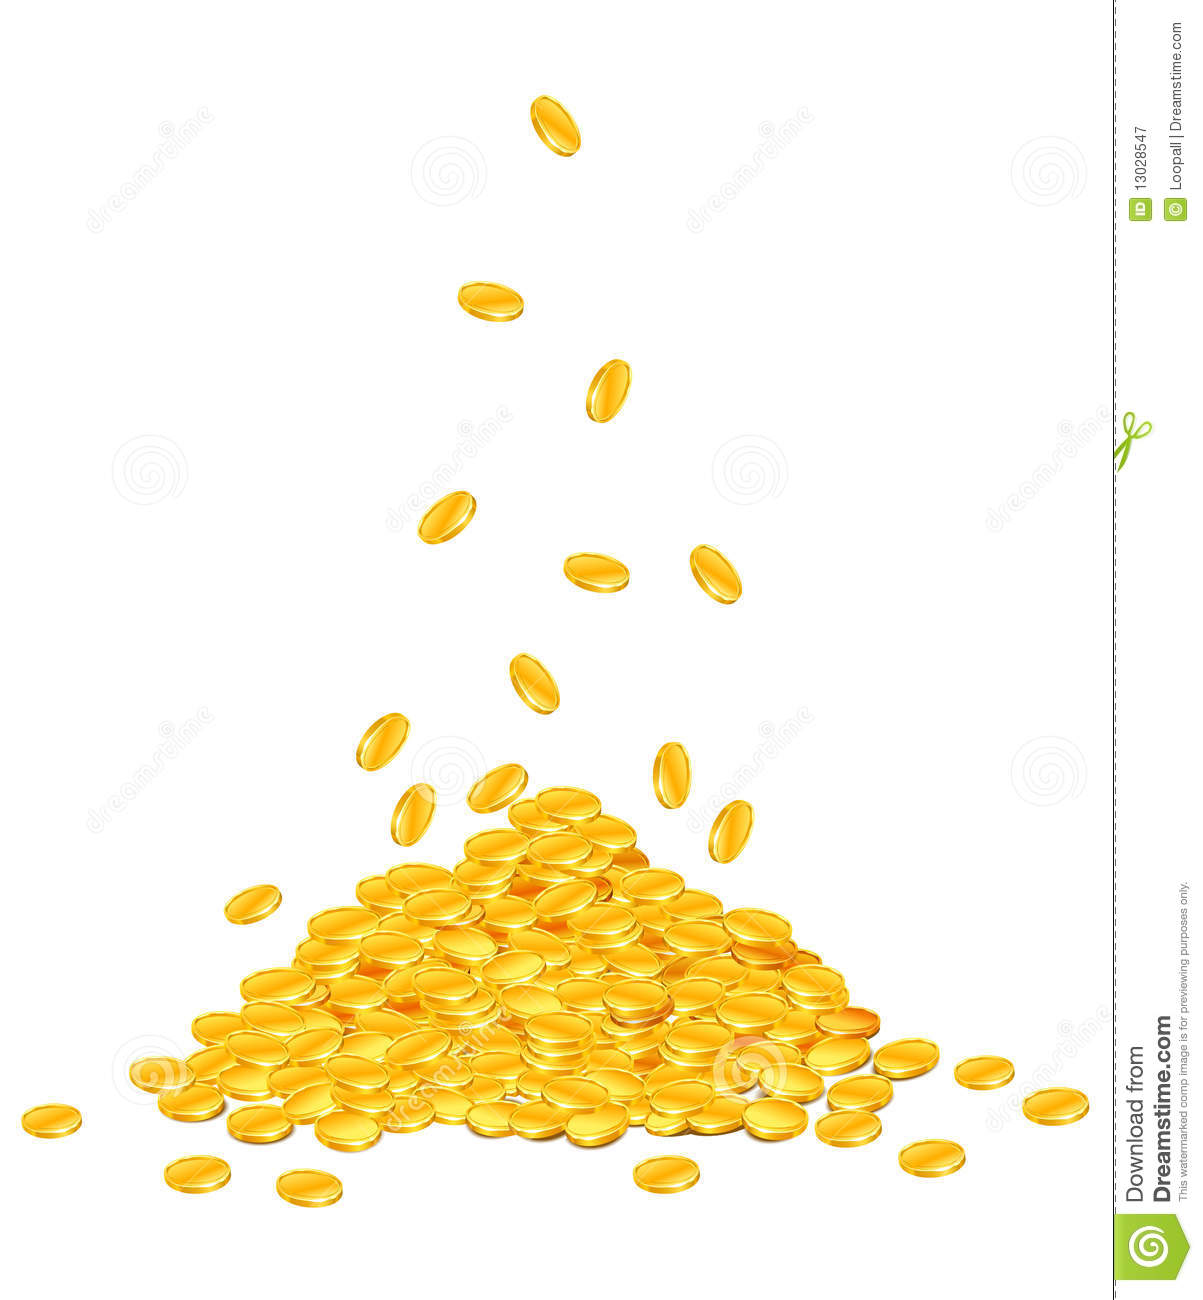 Gold Coins Falling Png Gold